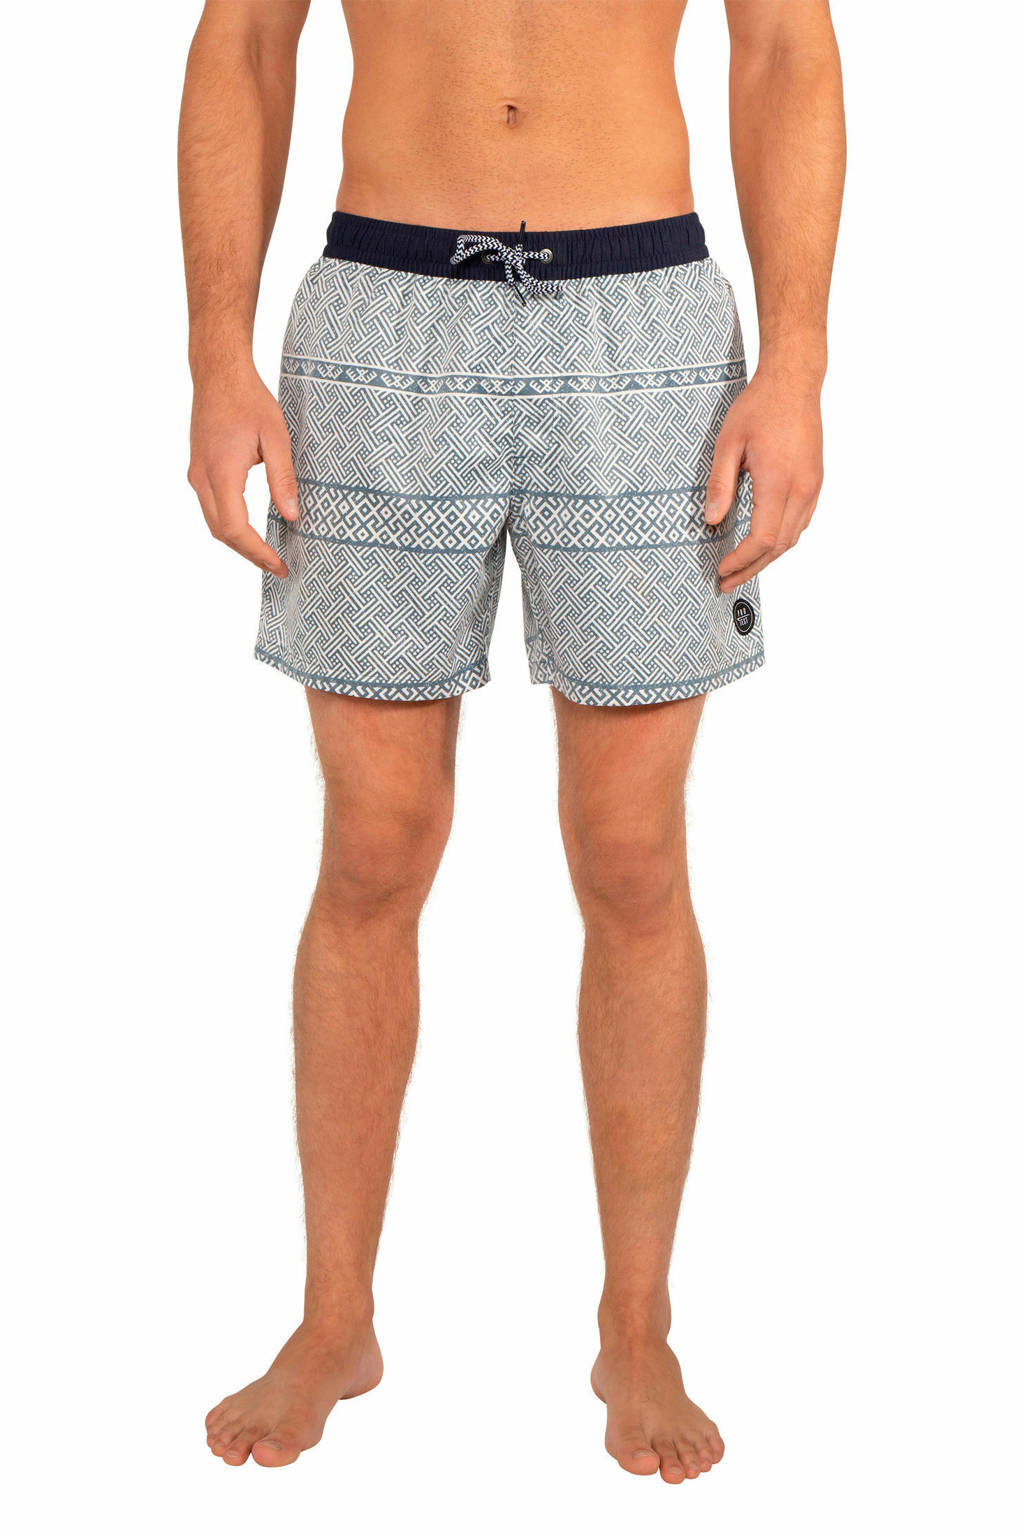 Protest zwemshort Holt met all over print blauw, Empire Blue